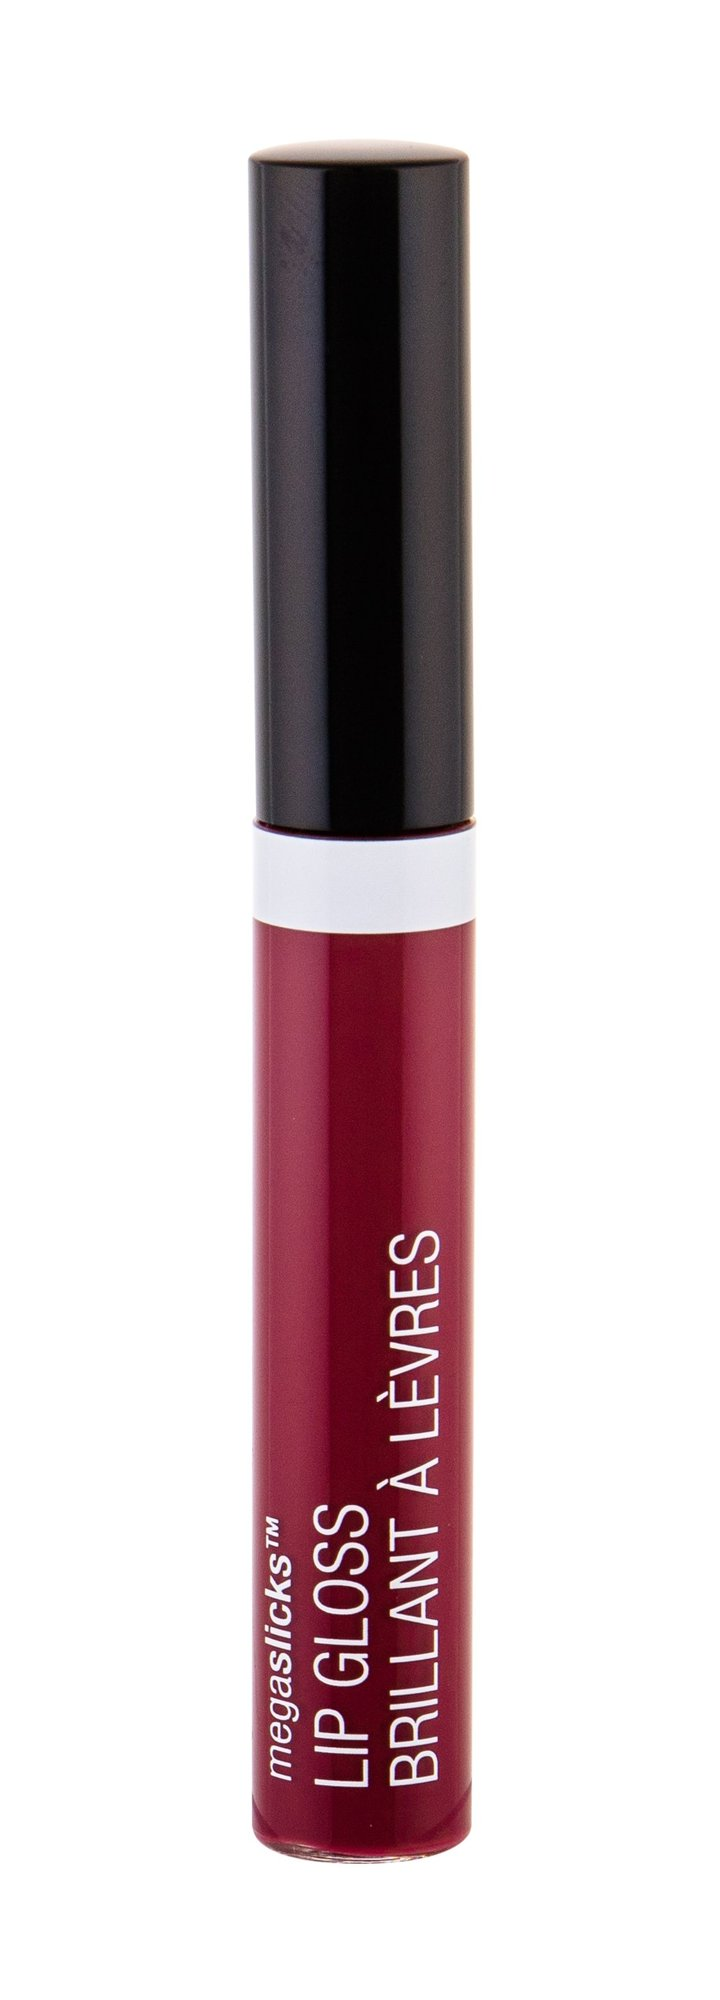 Wet n Wild MegaSlicks Lip Gloss 5,4ml Wined And Dined